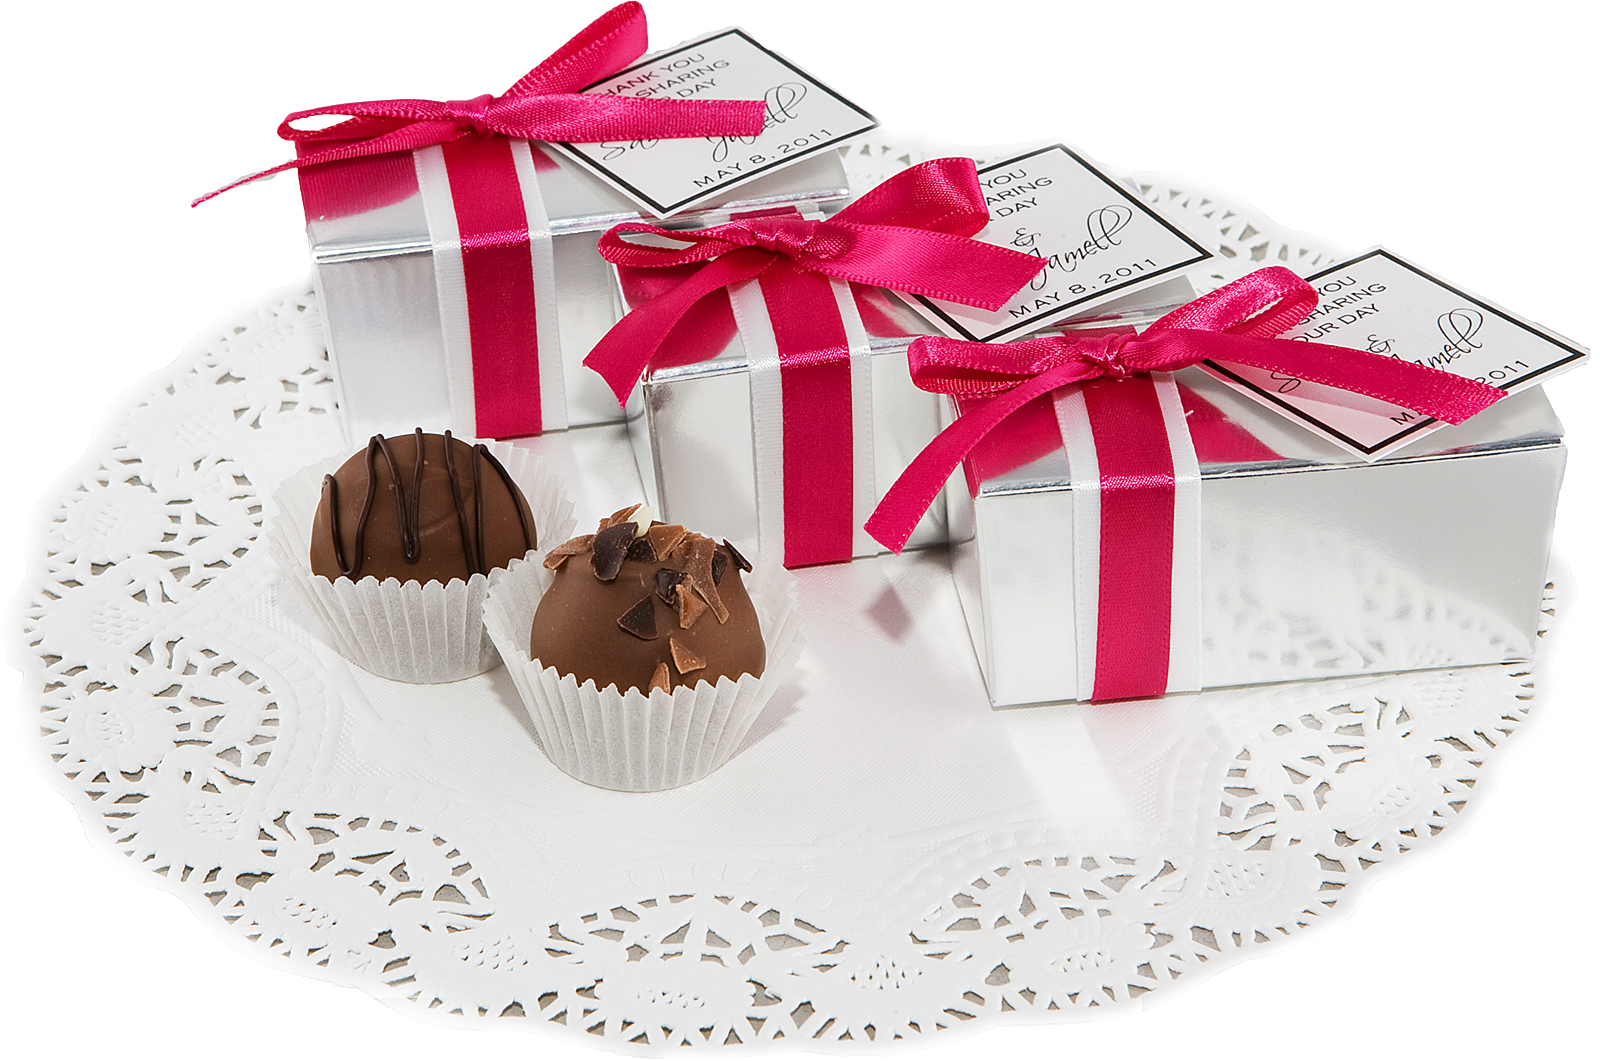 More Chocolate Items for Shopping and Sweets | Random Acts of Chocolate